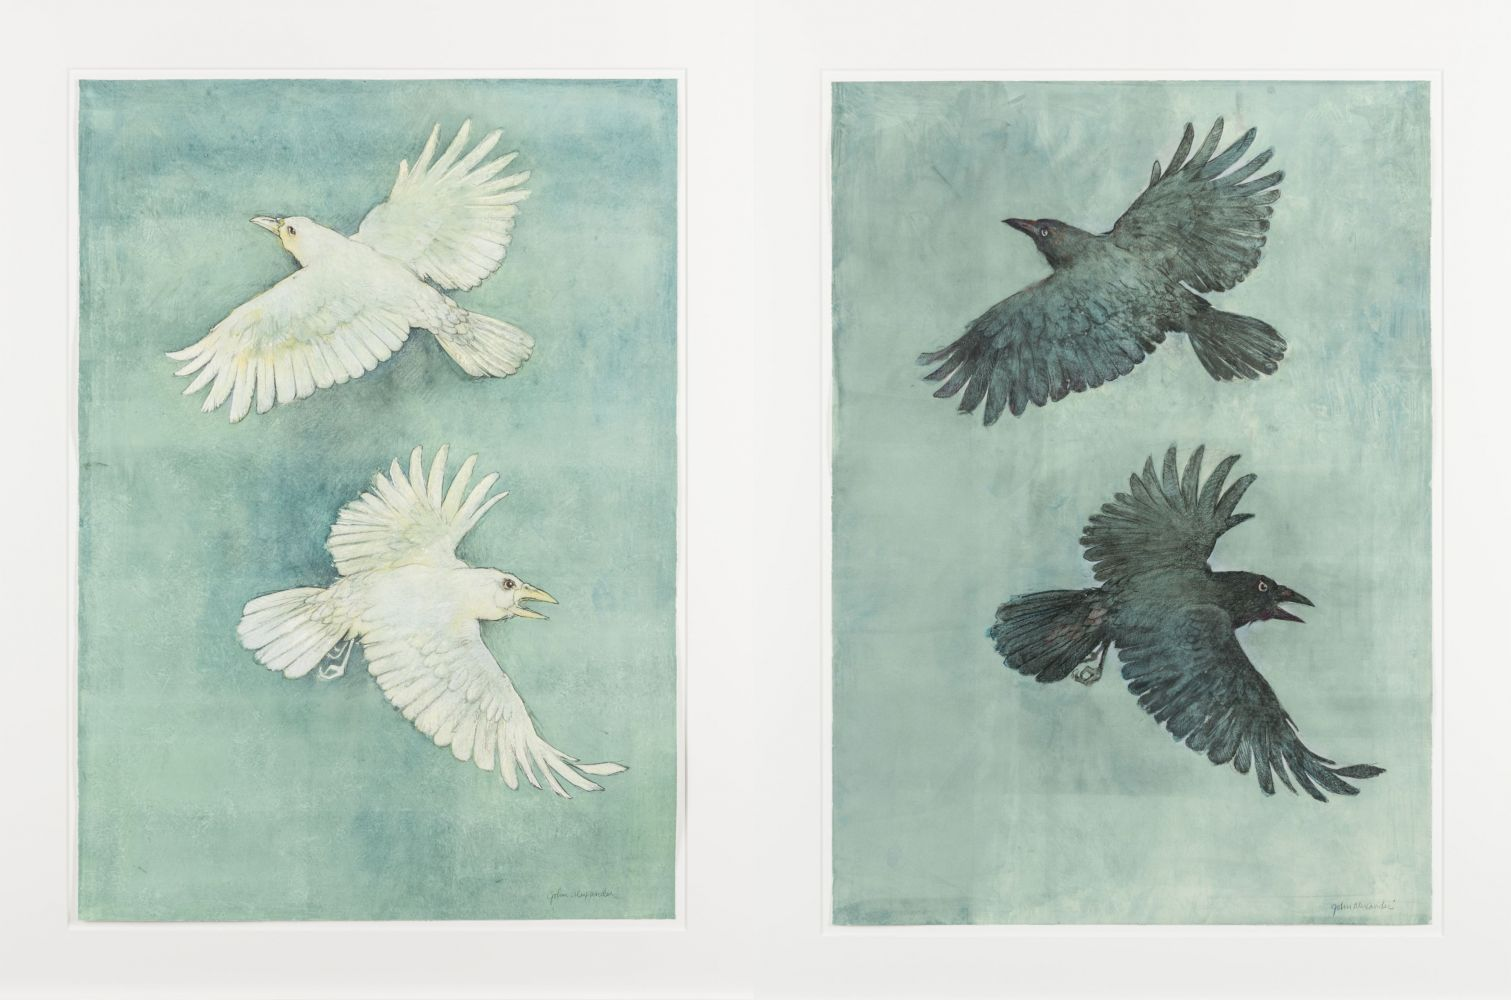 John Alexander  Albino Crows and Crows in a Fog, 2012  pair of monotypes from steel and aluminum plates with hand-coloring  paper: 36 x 25 1/2 inches  frame: 43 x 32 inches  both signed bottom right front  Print Studio: Pace Prints  $30,000